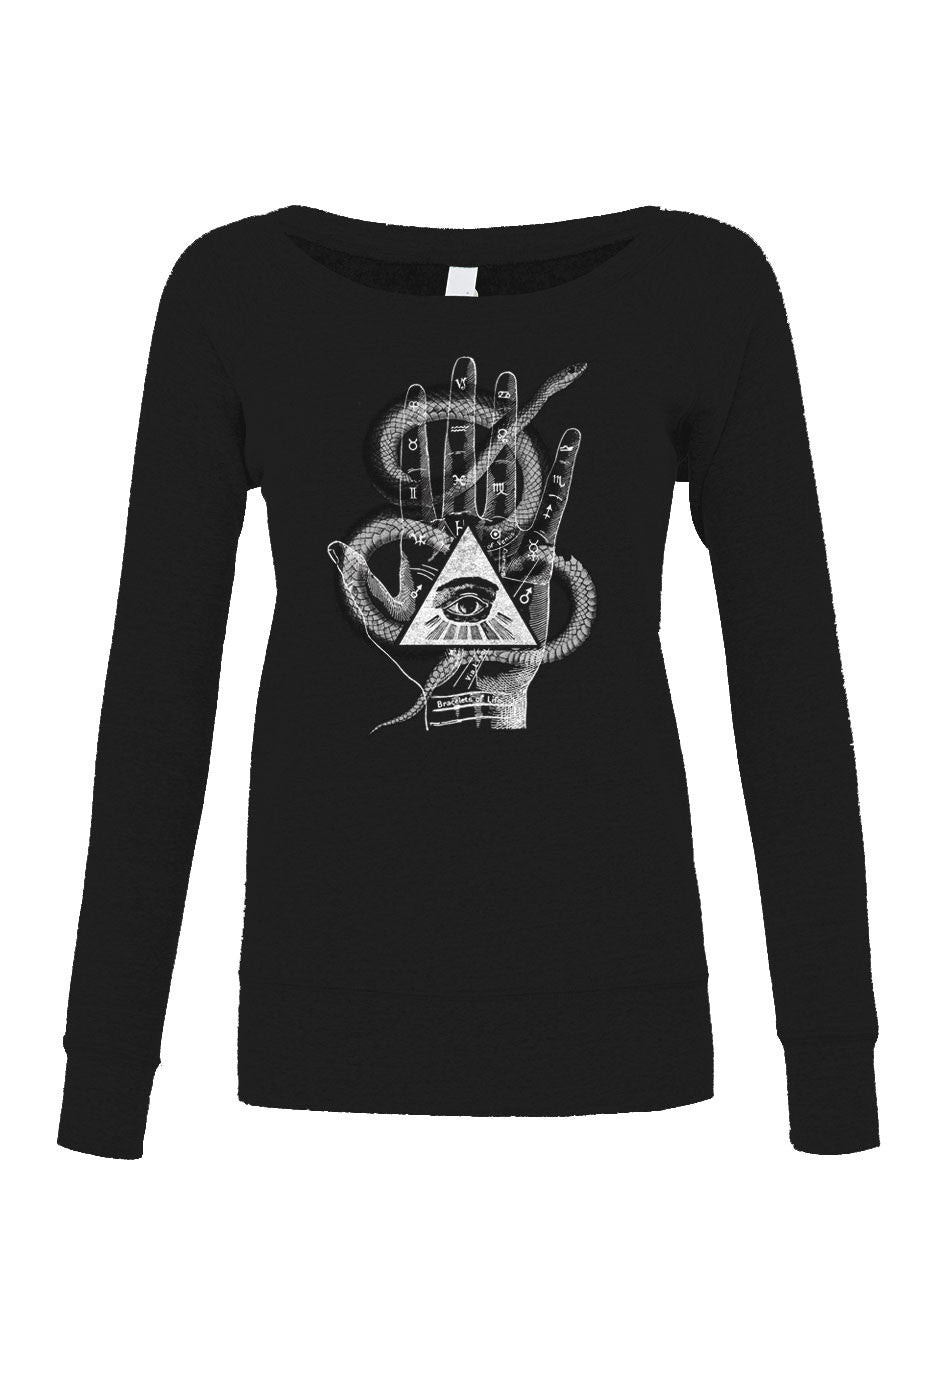 Women's Palmistry Gypsy Collage Scoop Neck Fleece